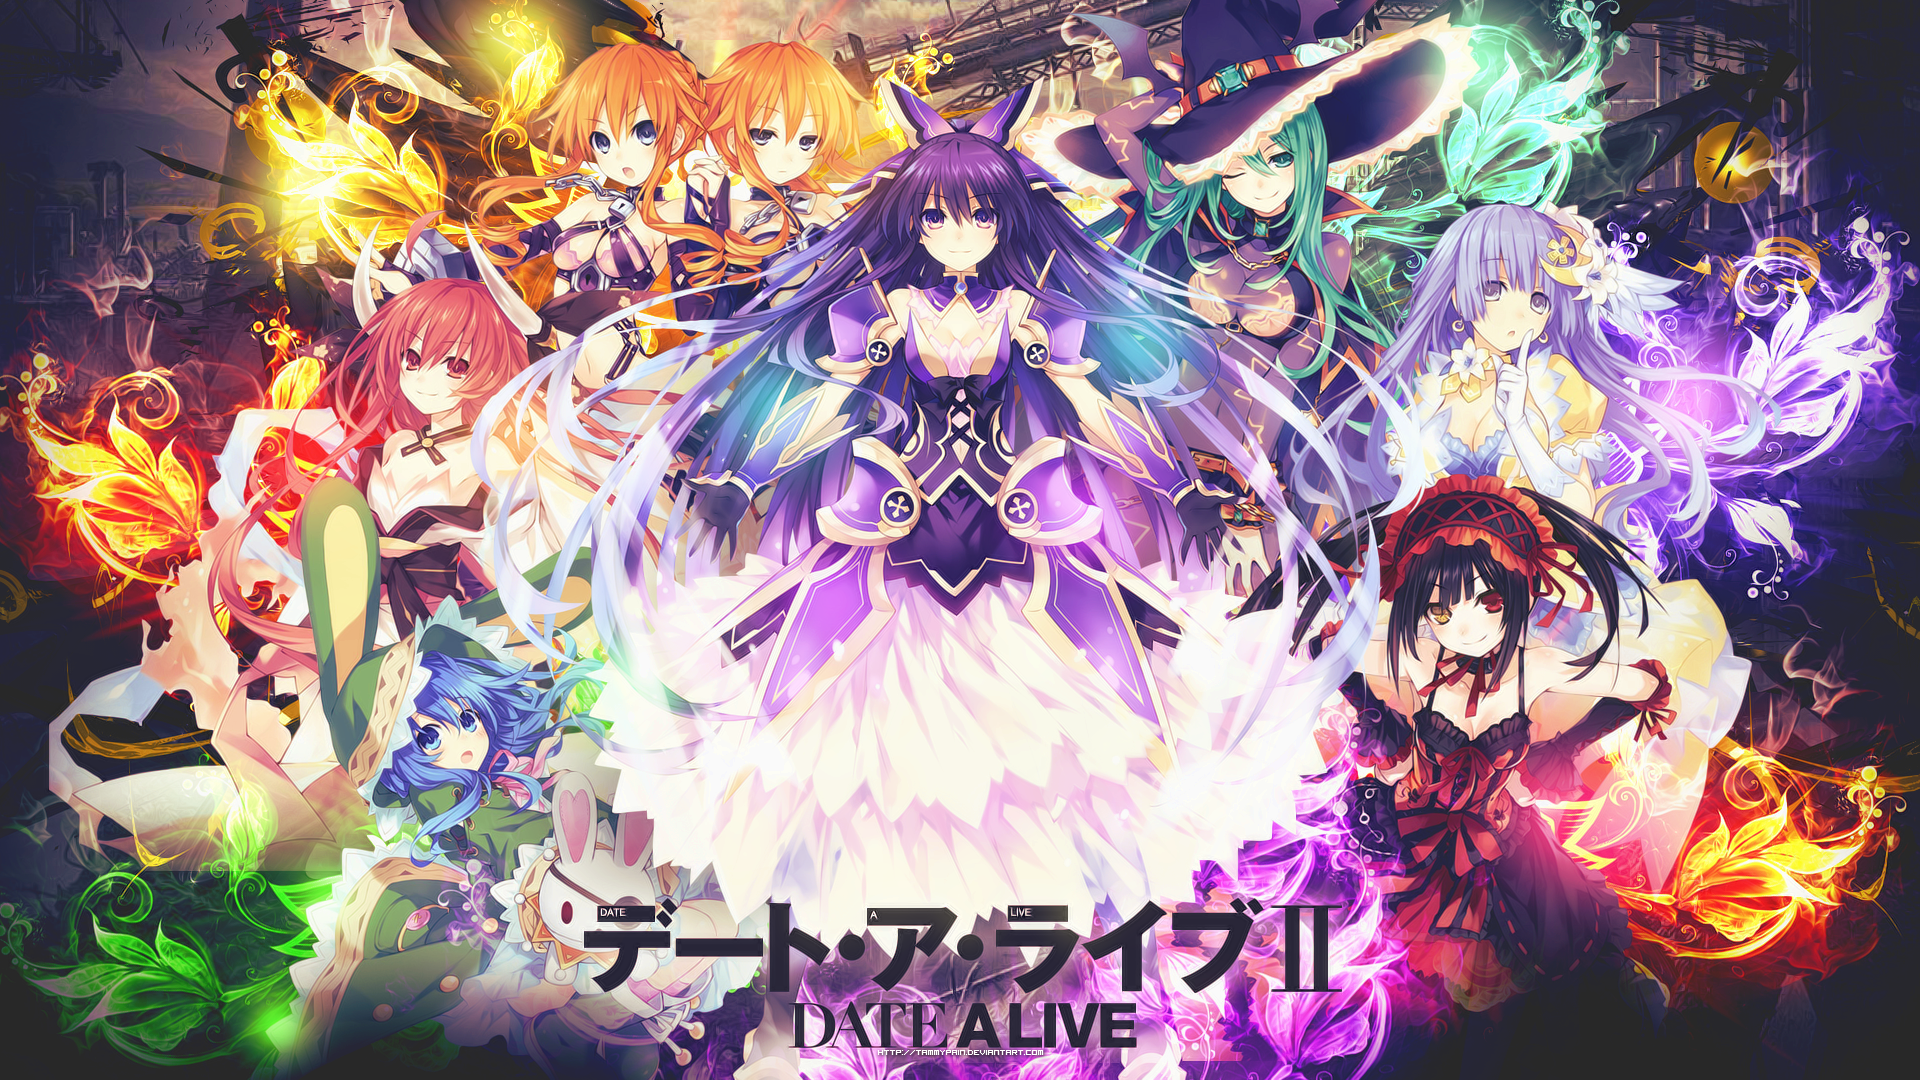 Date A Live Computer Wallpapers Desktop Backgrounds 1920x1080